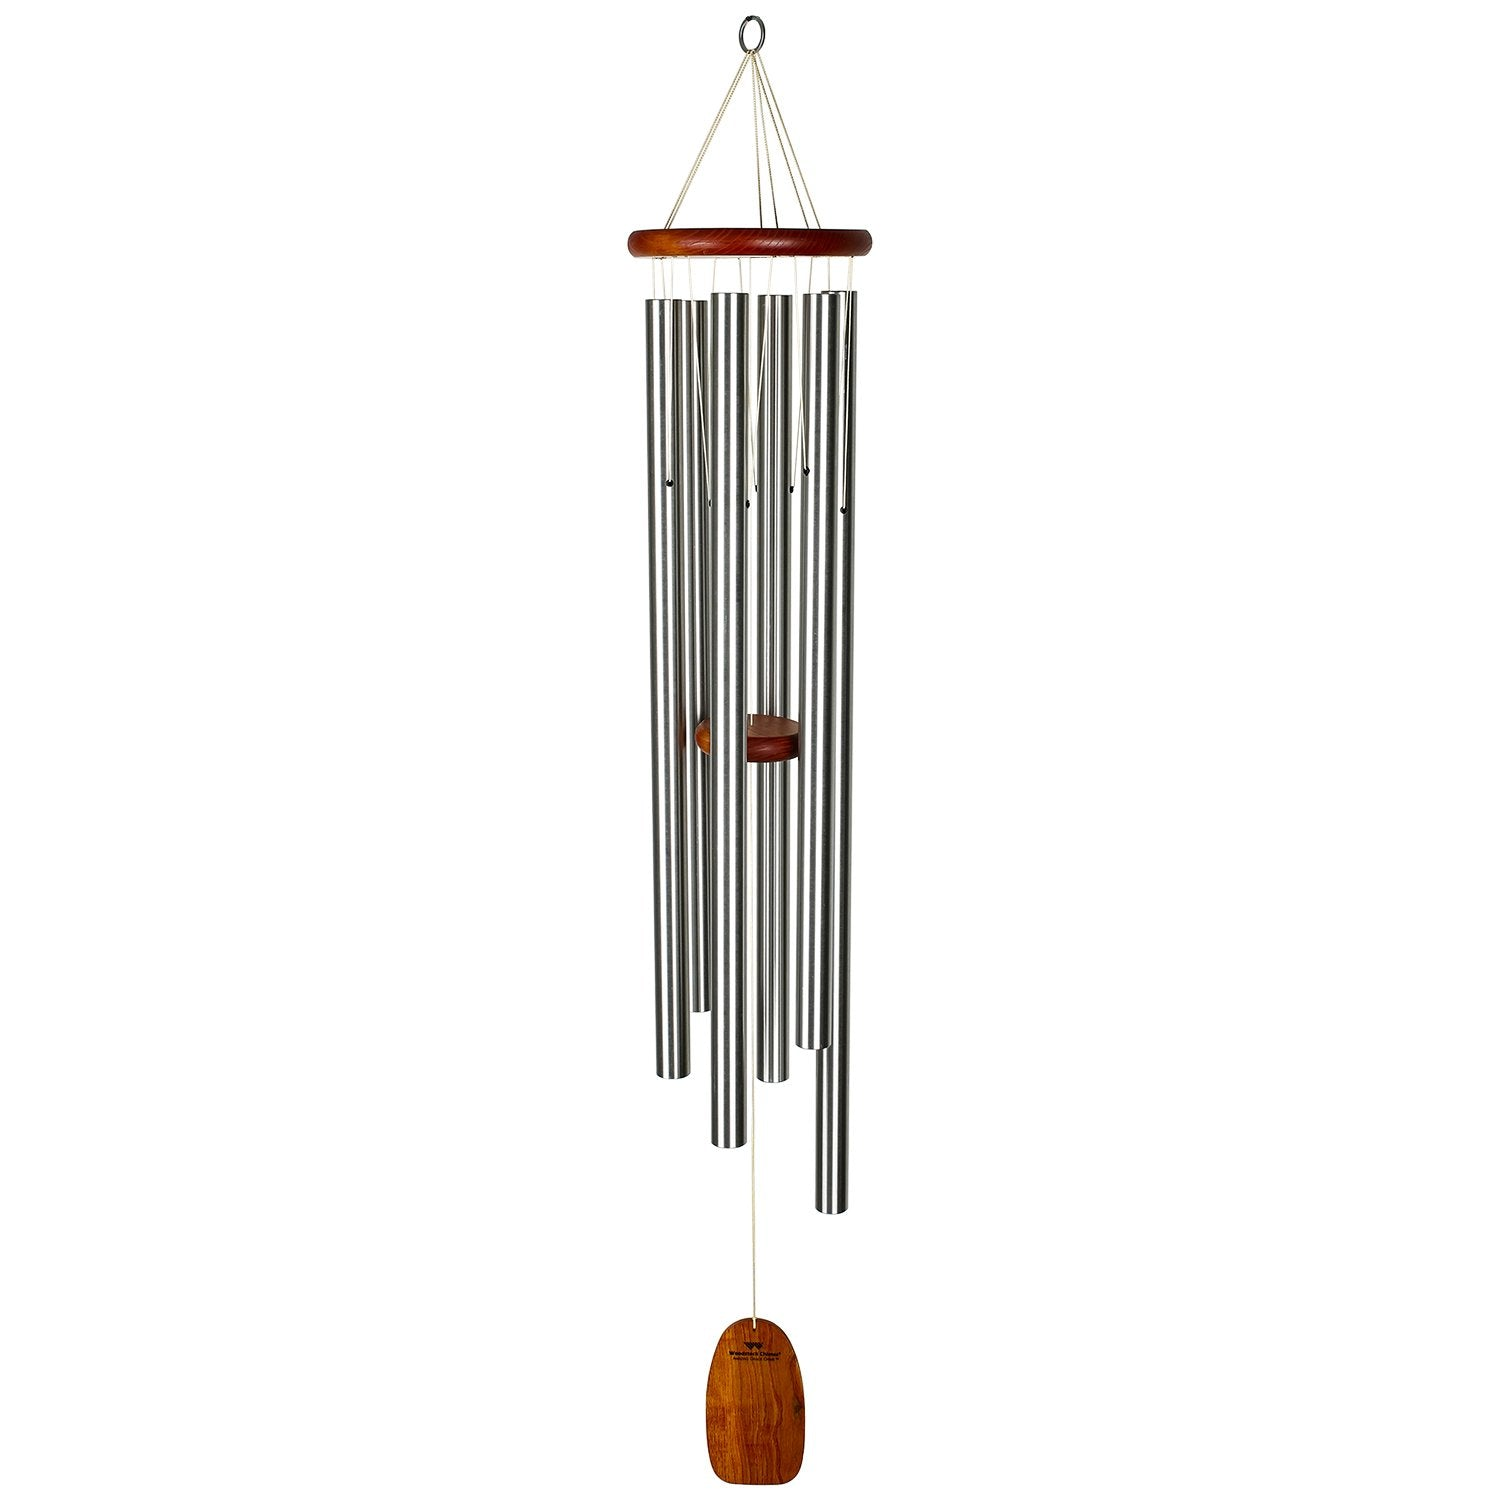 Amazing Grace Chime - Heavenly full product image